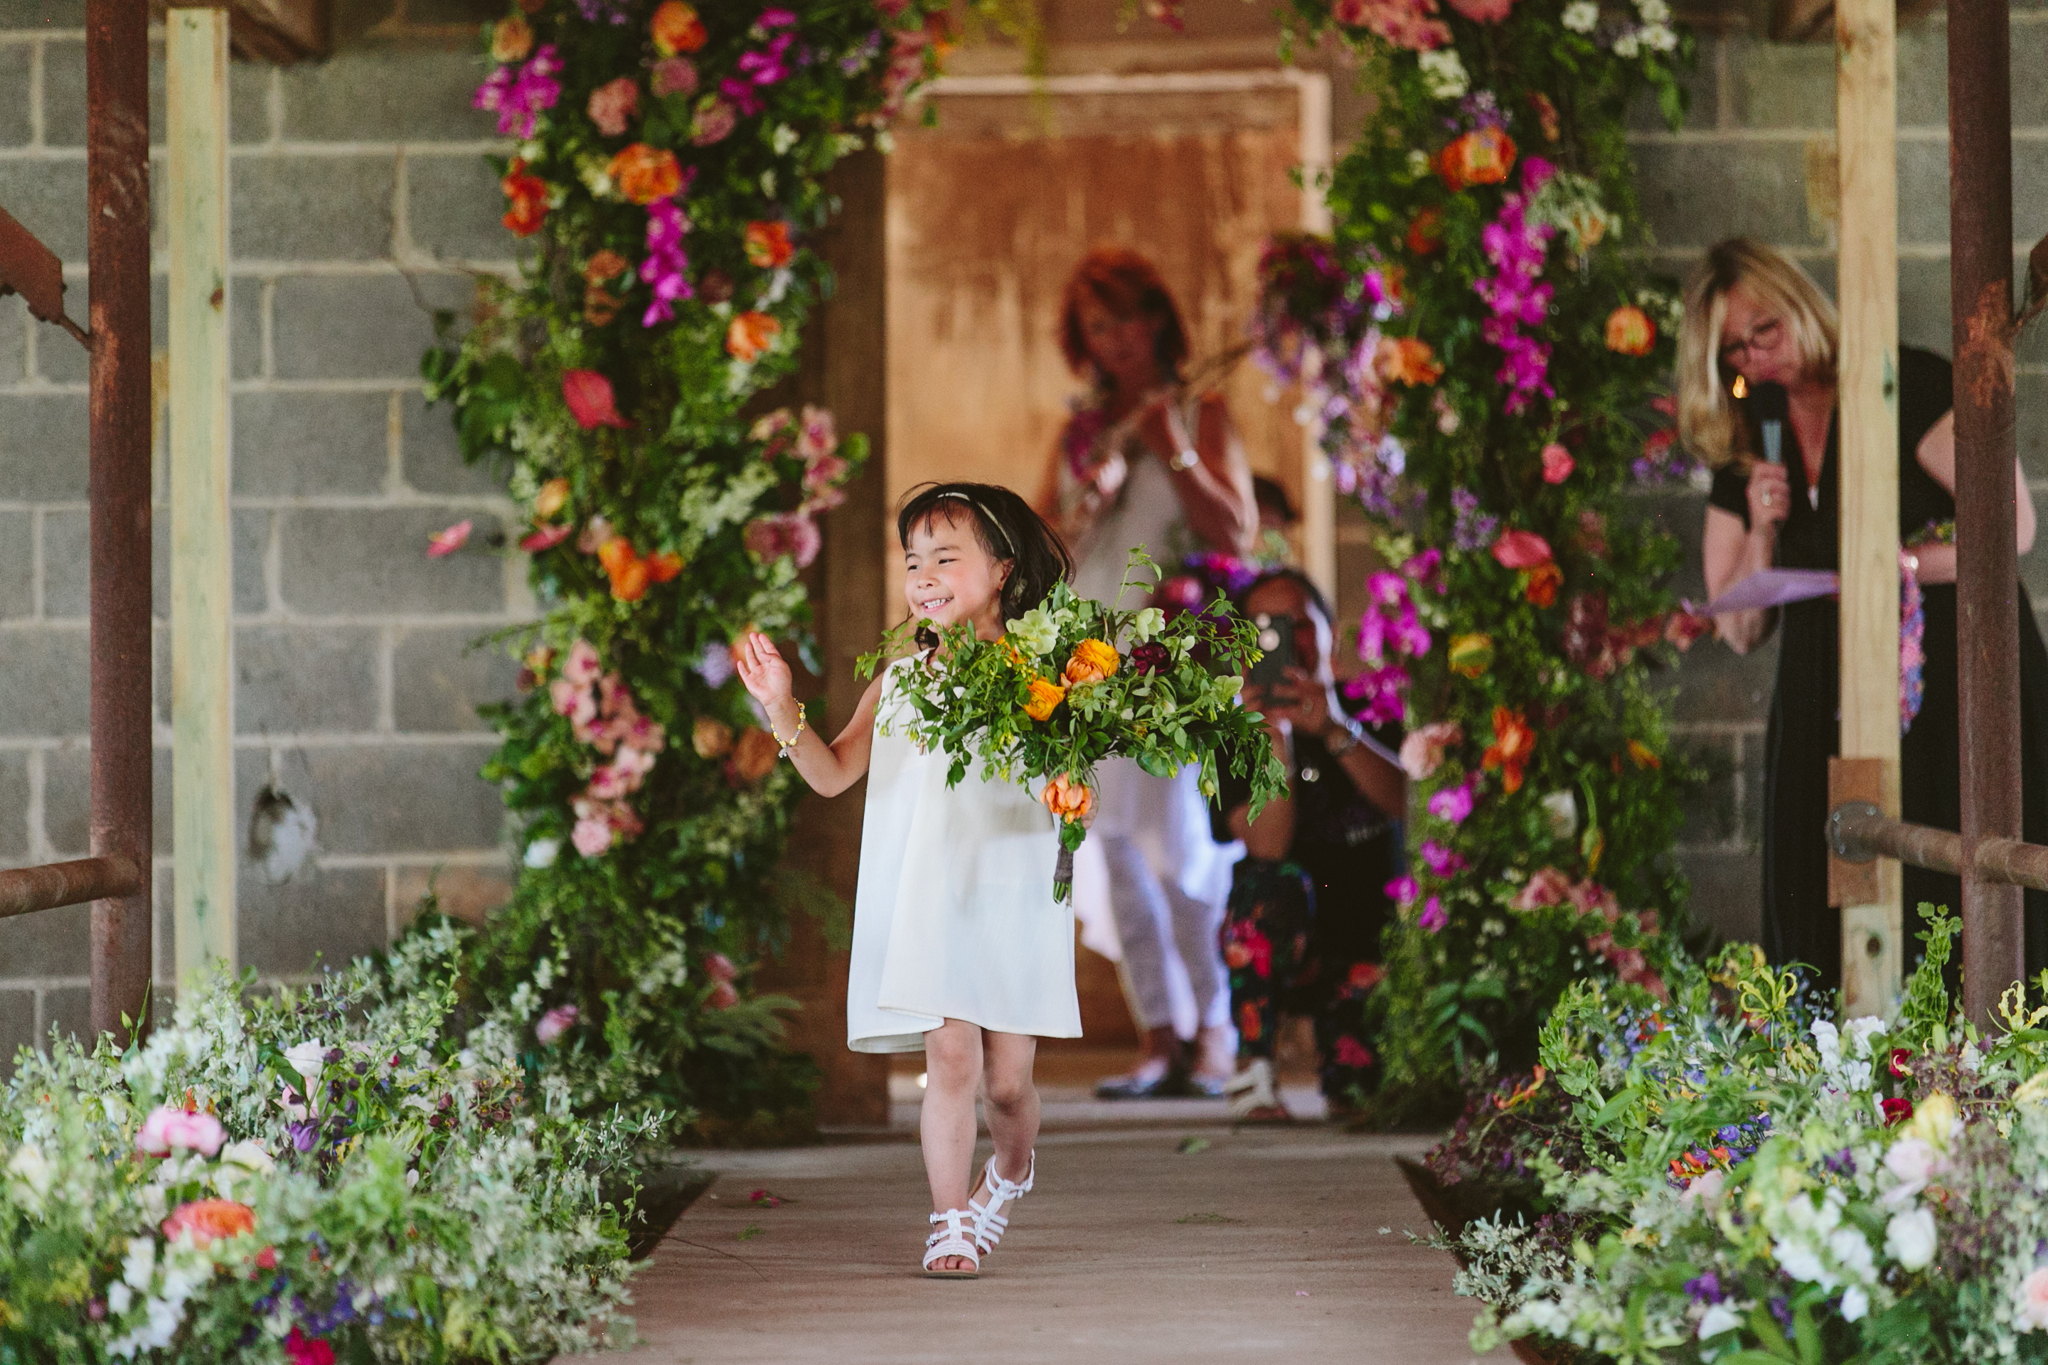 Little one having a blast. I see a proud mom in the background capturing the moment. Bouquet by Jaclyn Millonzi of  Feisty Flowers  in Milwaukee.